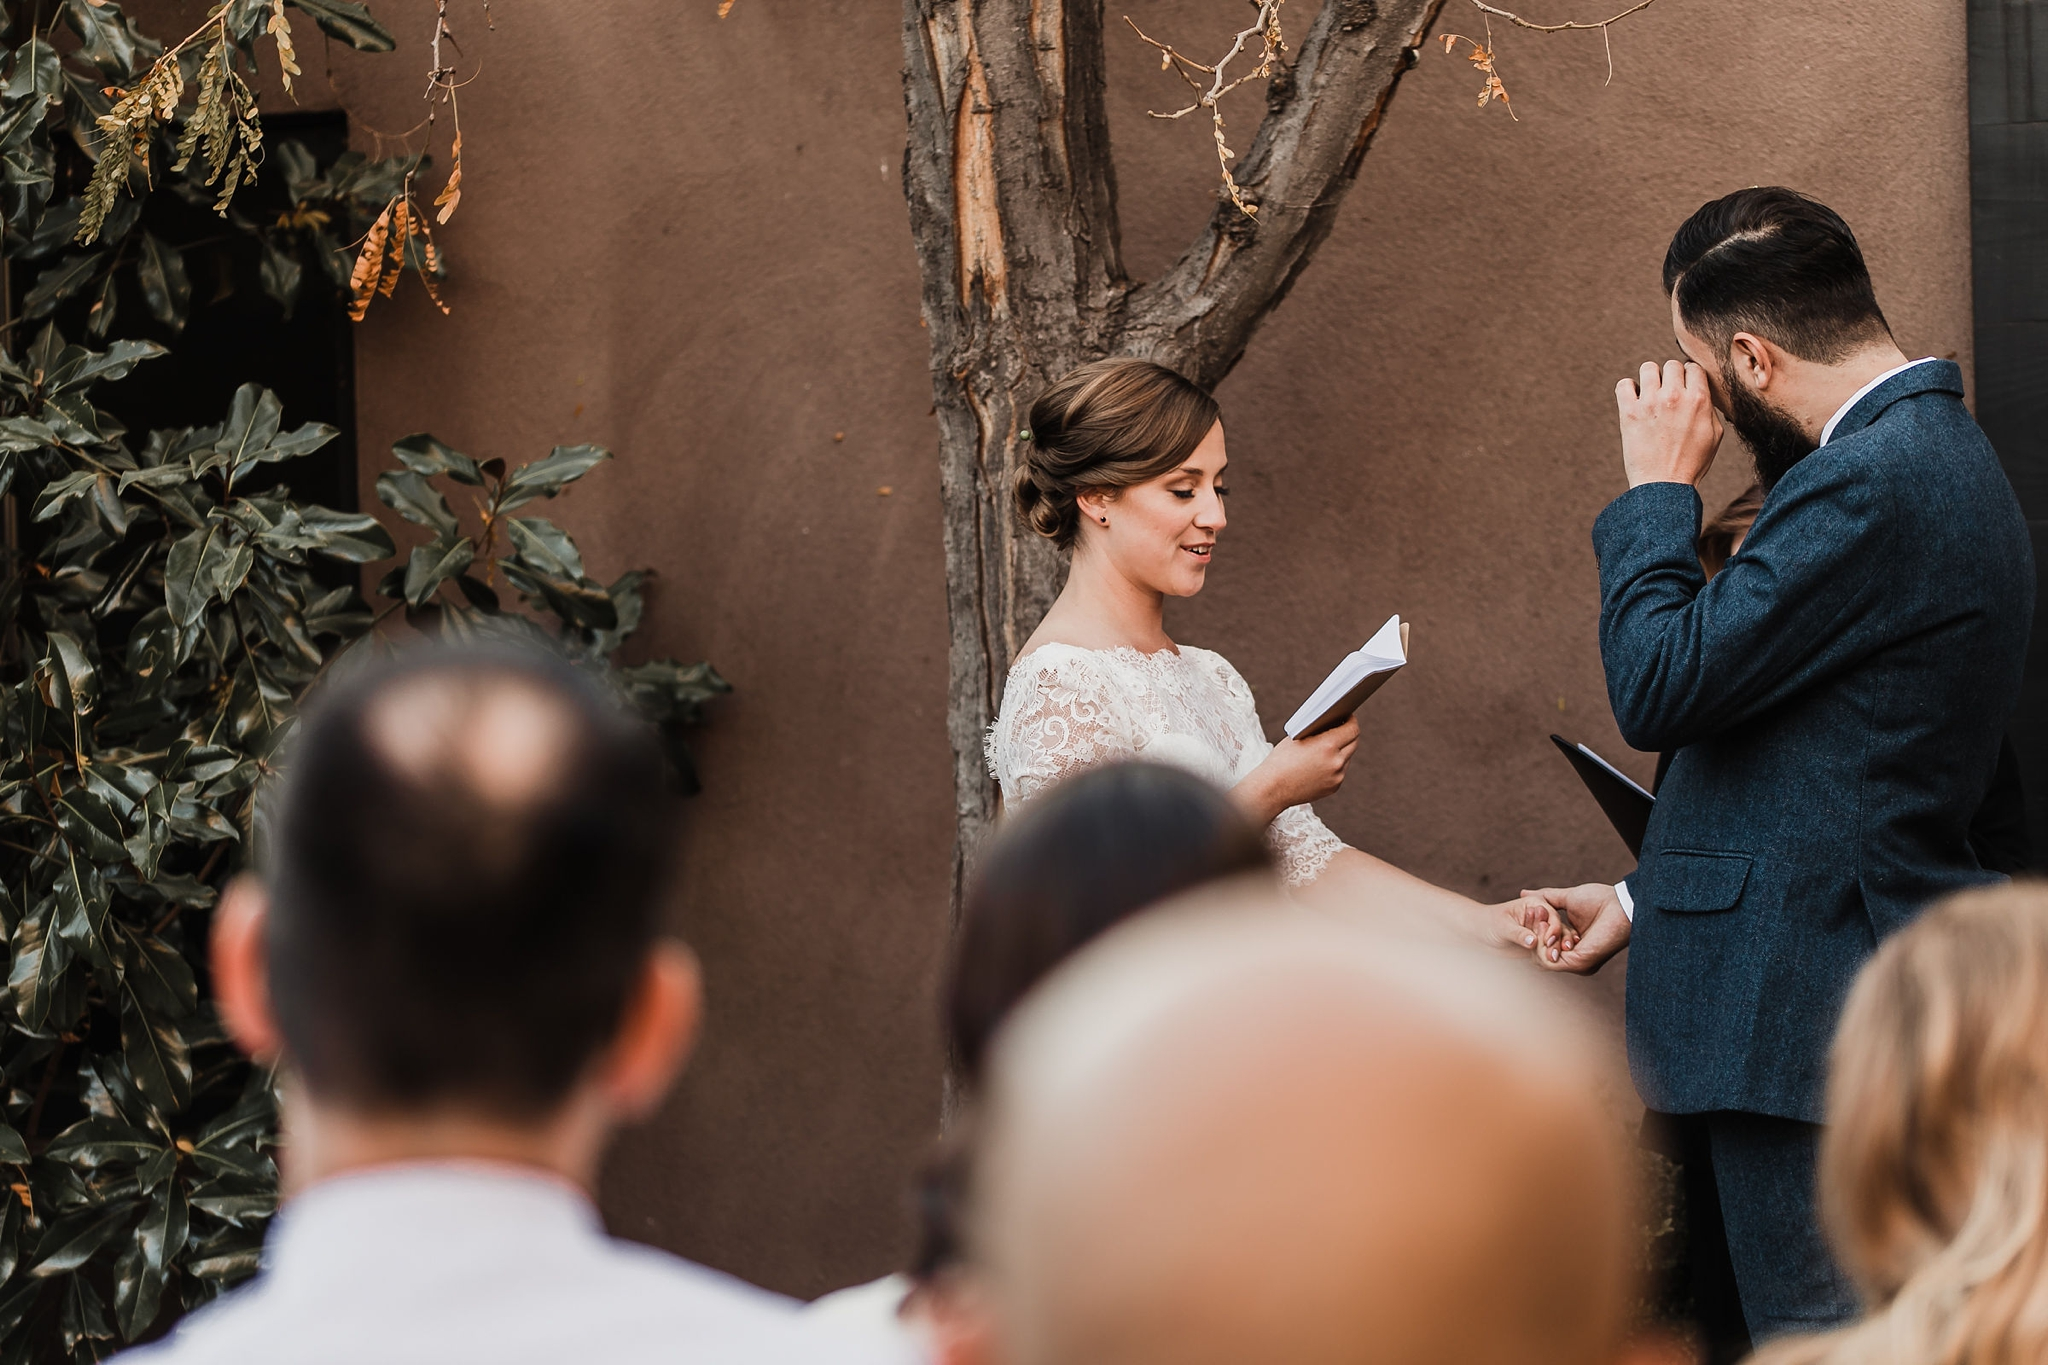 Alicia+lucia+photography+-+albuquerque+wedding+photographer+-+santa+fe+wedding+photography+-+new+mexico+wedding+photographer+-+new+mexico+wedding+-+wedding+vows+-+writing+your+own+vows+-+wedding+inspo_0018.jpg